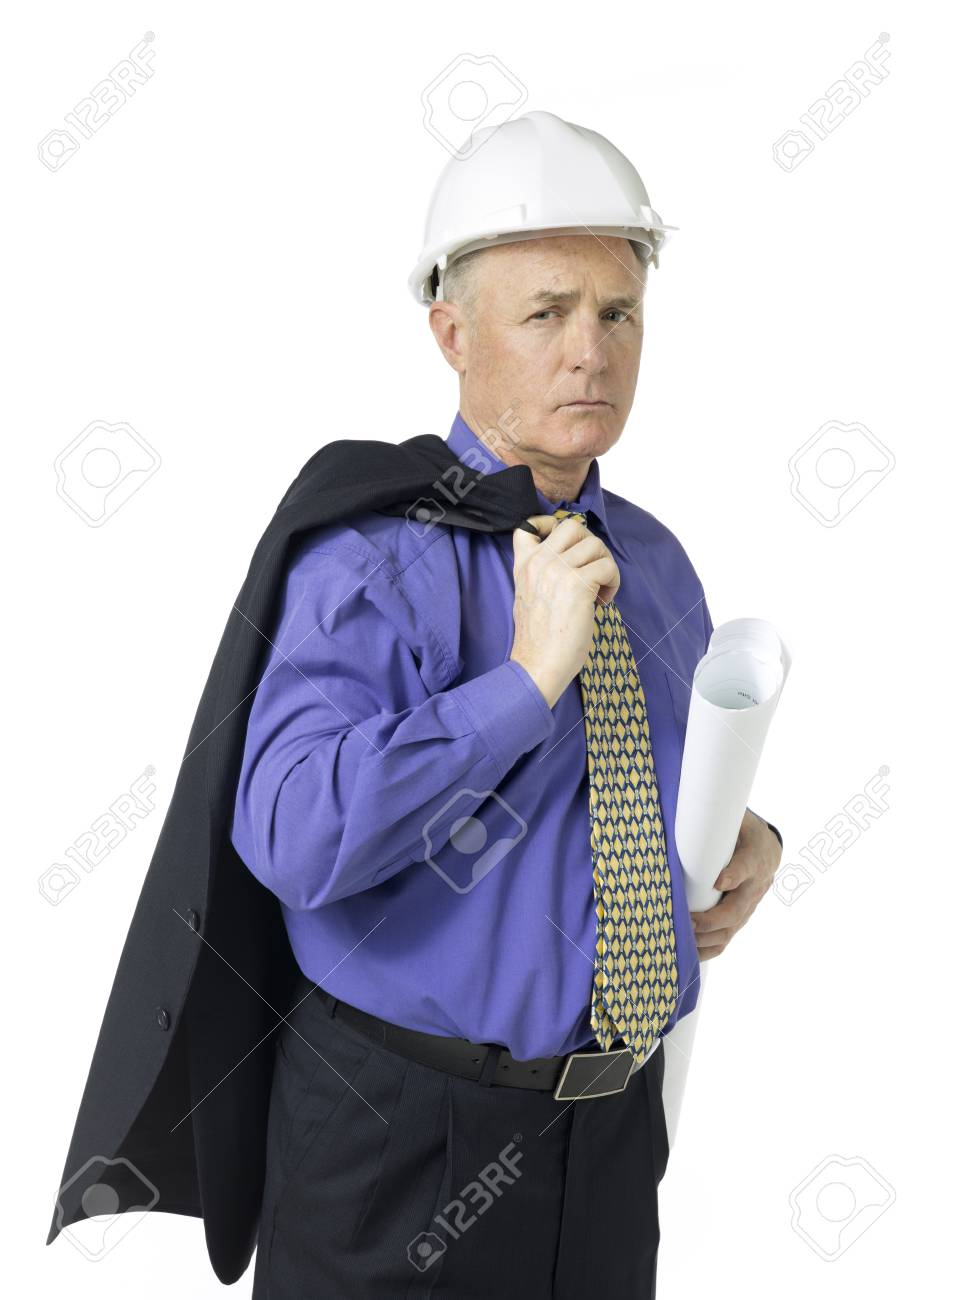 Portrait of architect holding a plan against white background Stock Photo - 17518964